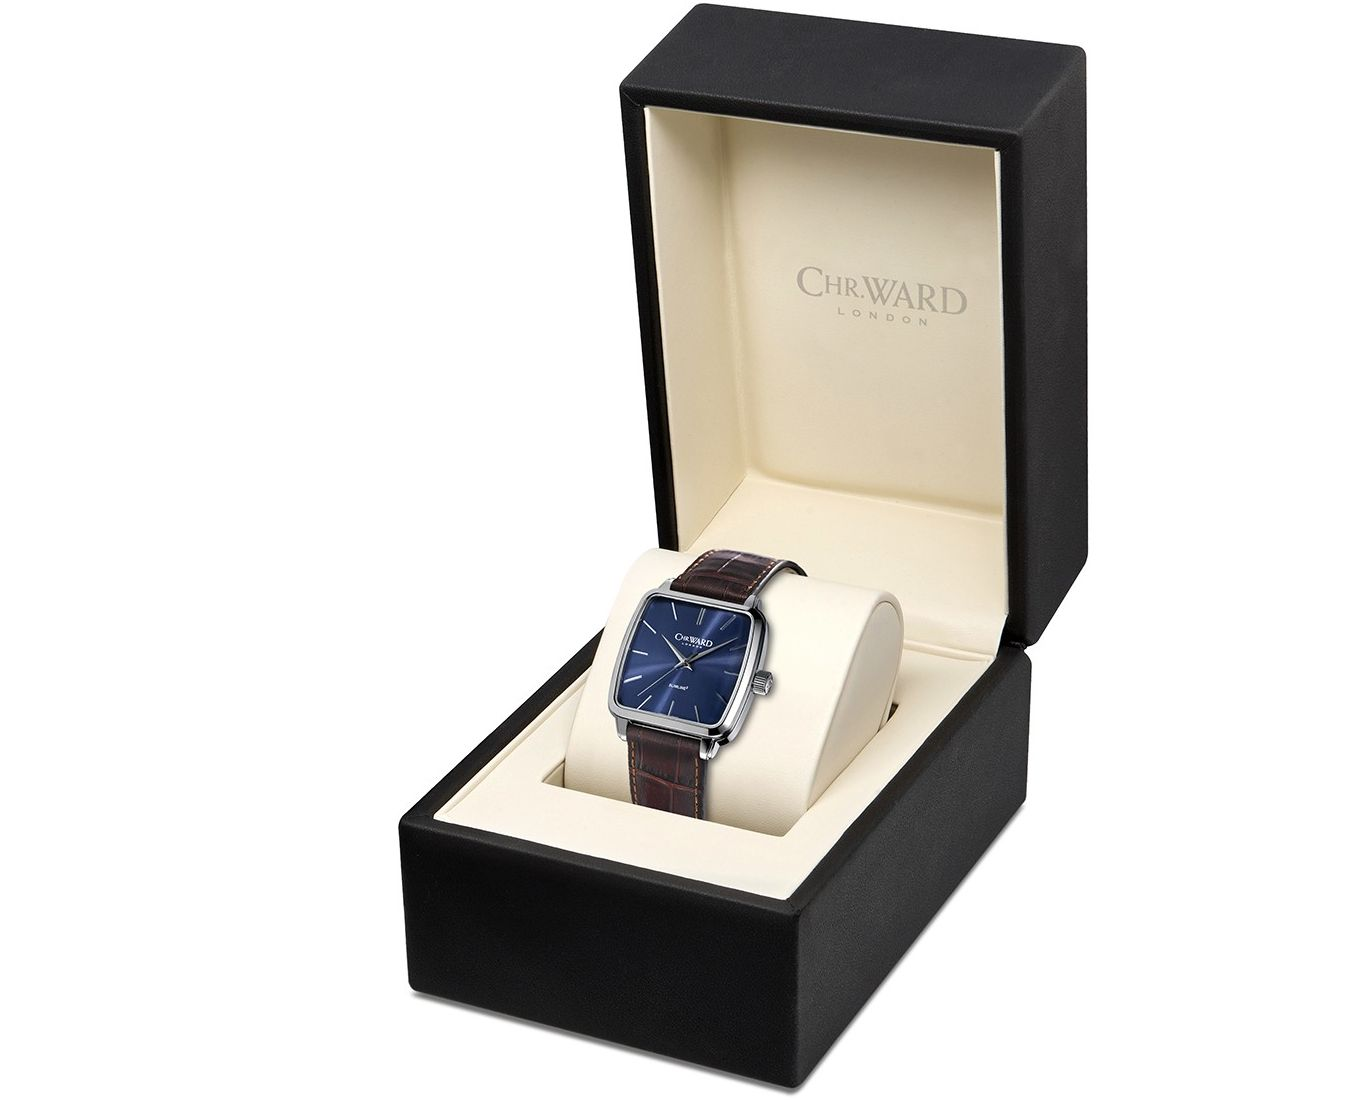 As usual, the Chr. Ward C5 Malvern Slimline Square is offered in a nice presentation box